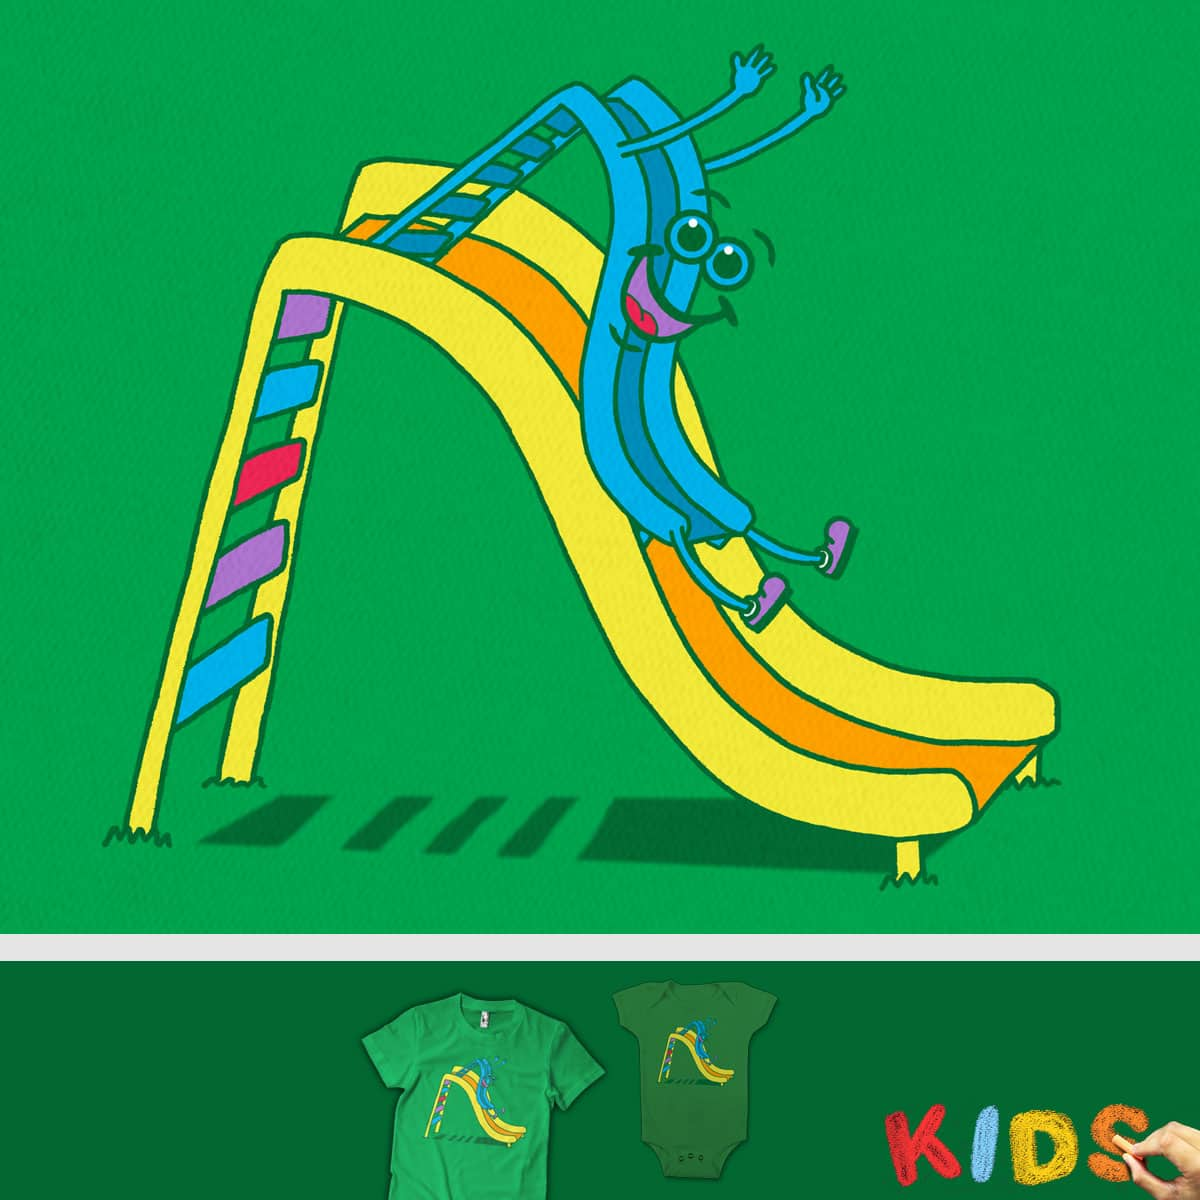 Slide Fun by SteveOramA and rossmat8 on Threadless